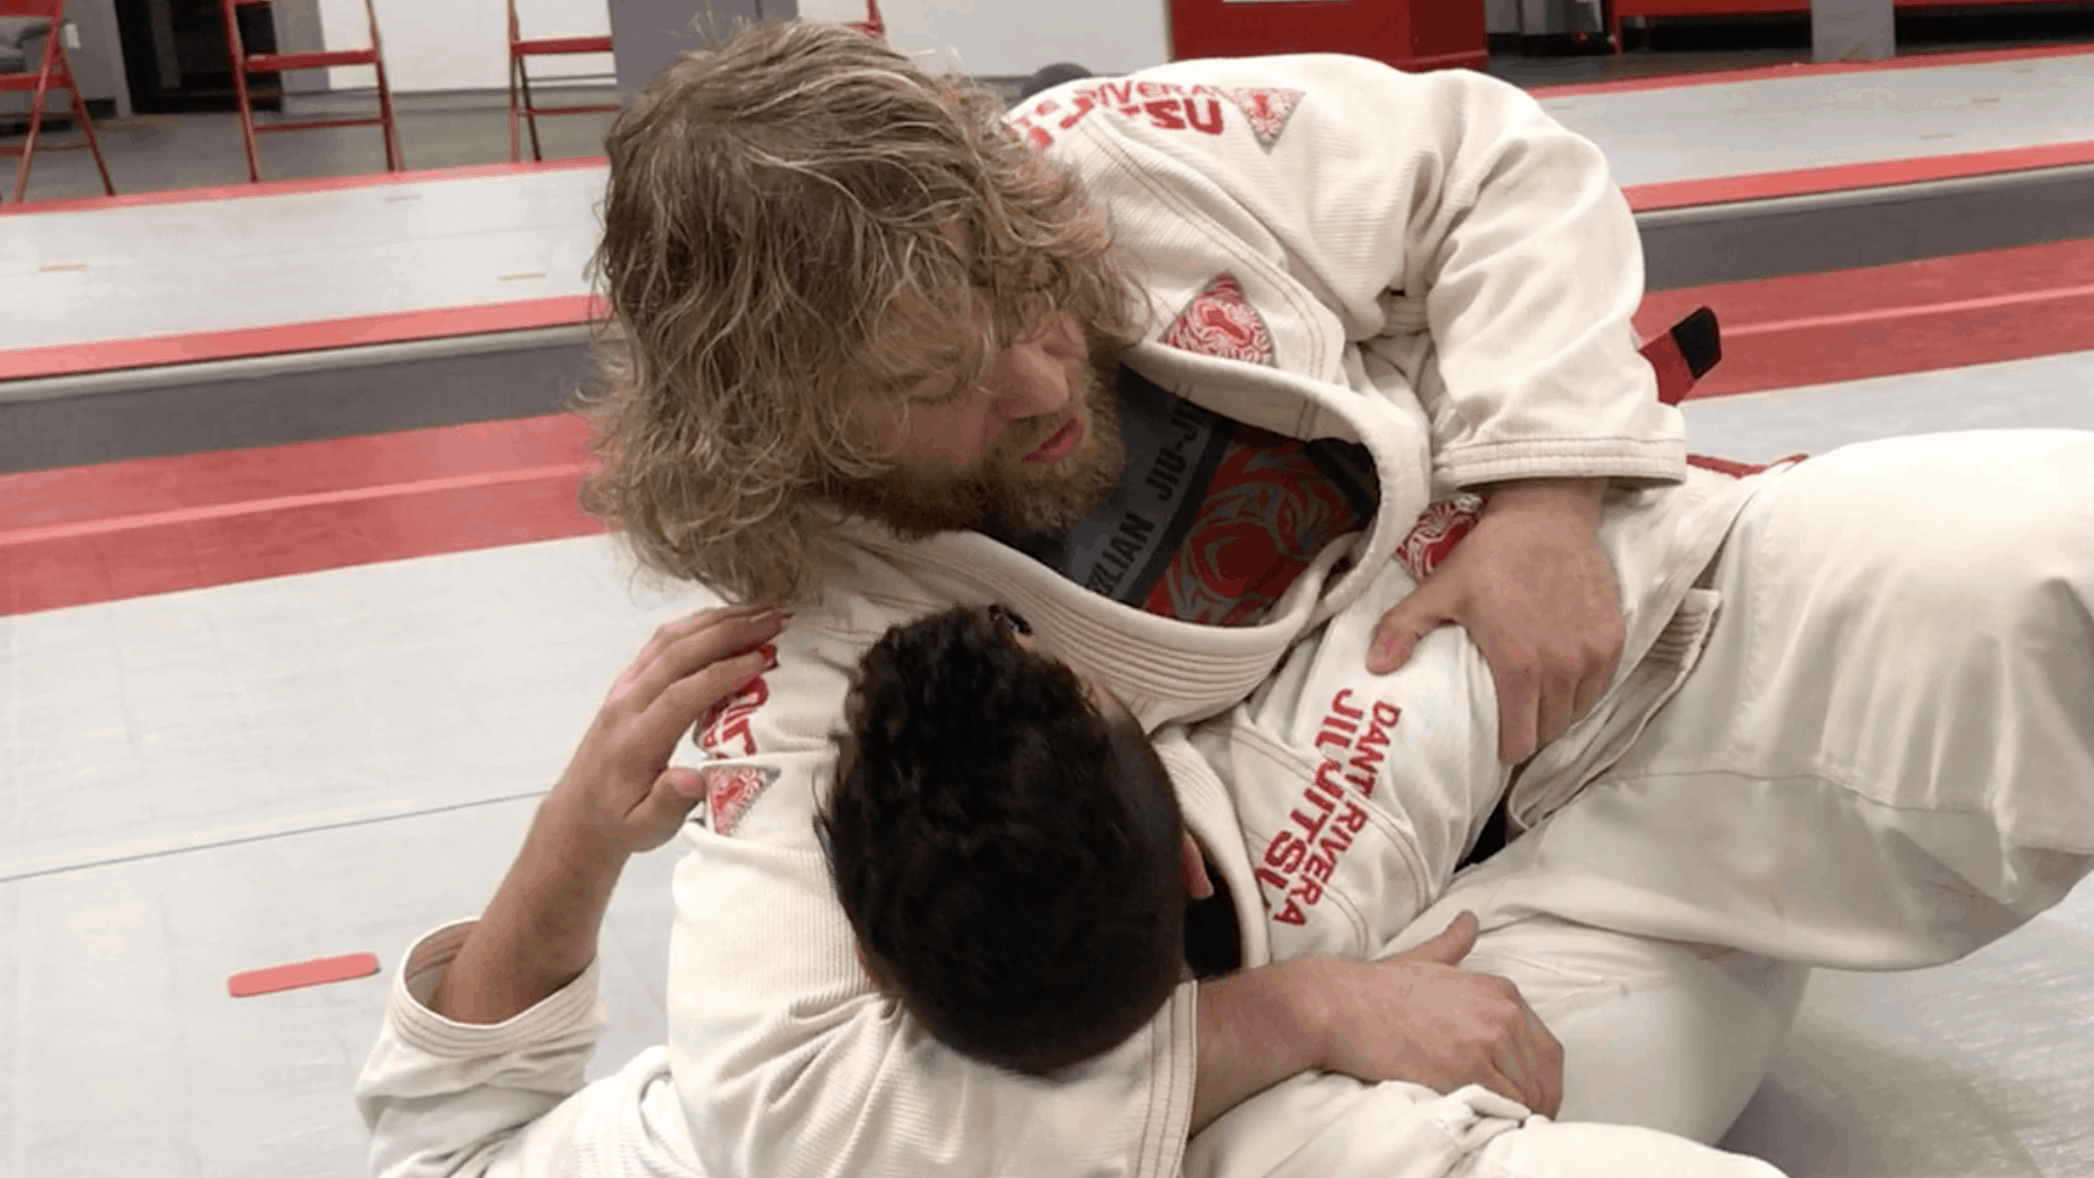 [VIDEO] Kesa Gatame (Top Judo Side Control) Details, Principles, Tips for Easier Control